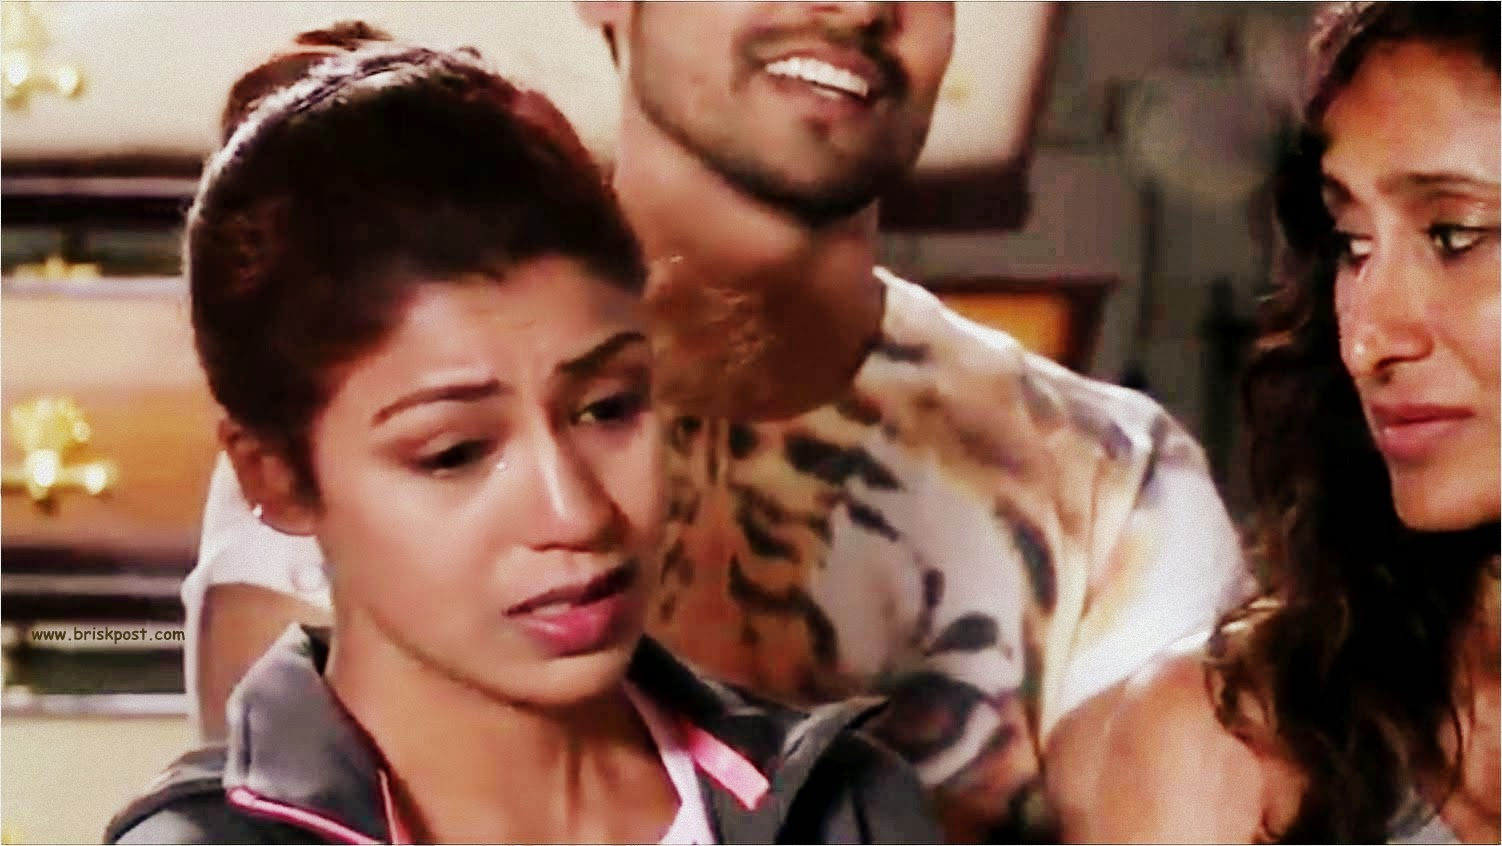 Khatron Ke Khiladi Debina crying after seeing other contestants with Cockroaches, crickets, earthworms and insects during a stunt